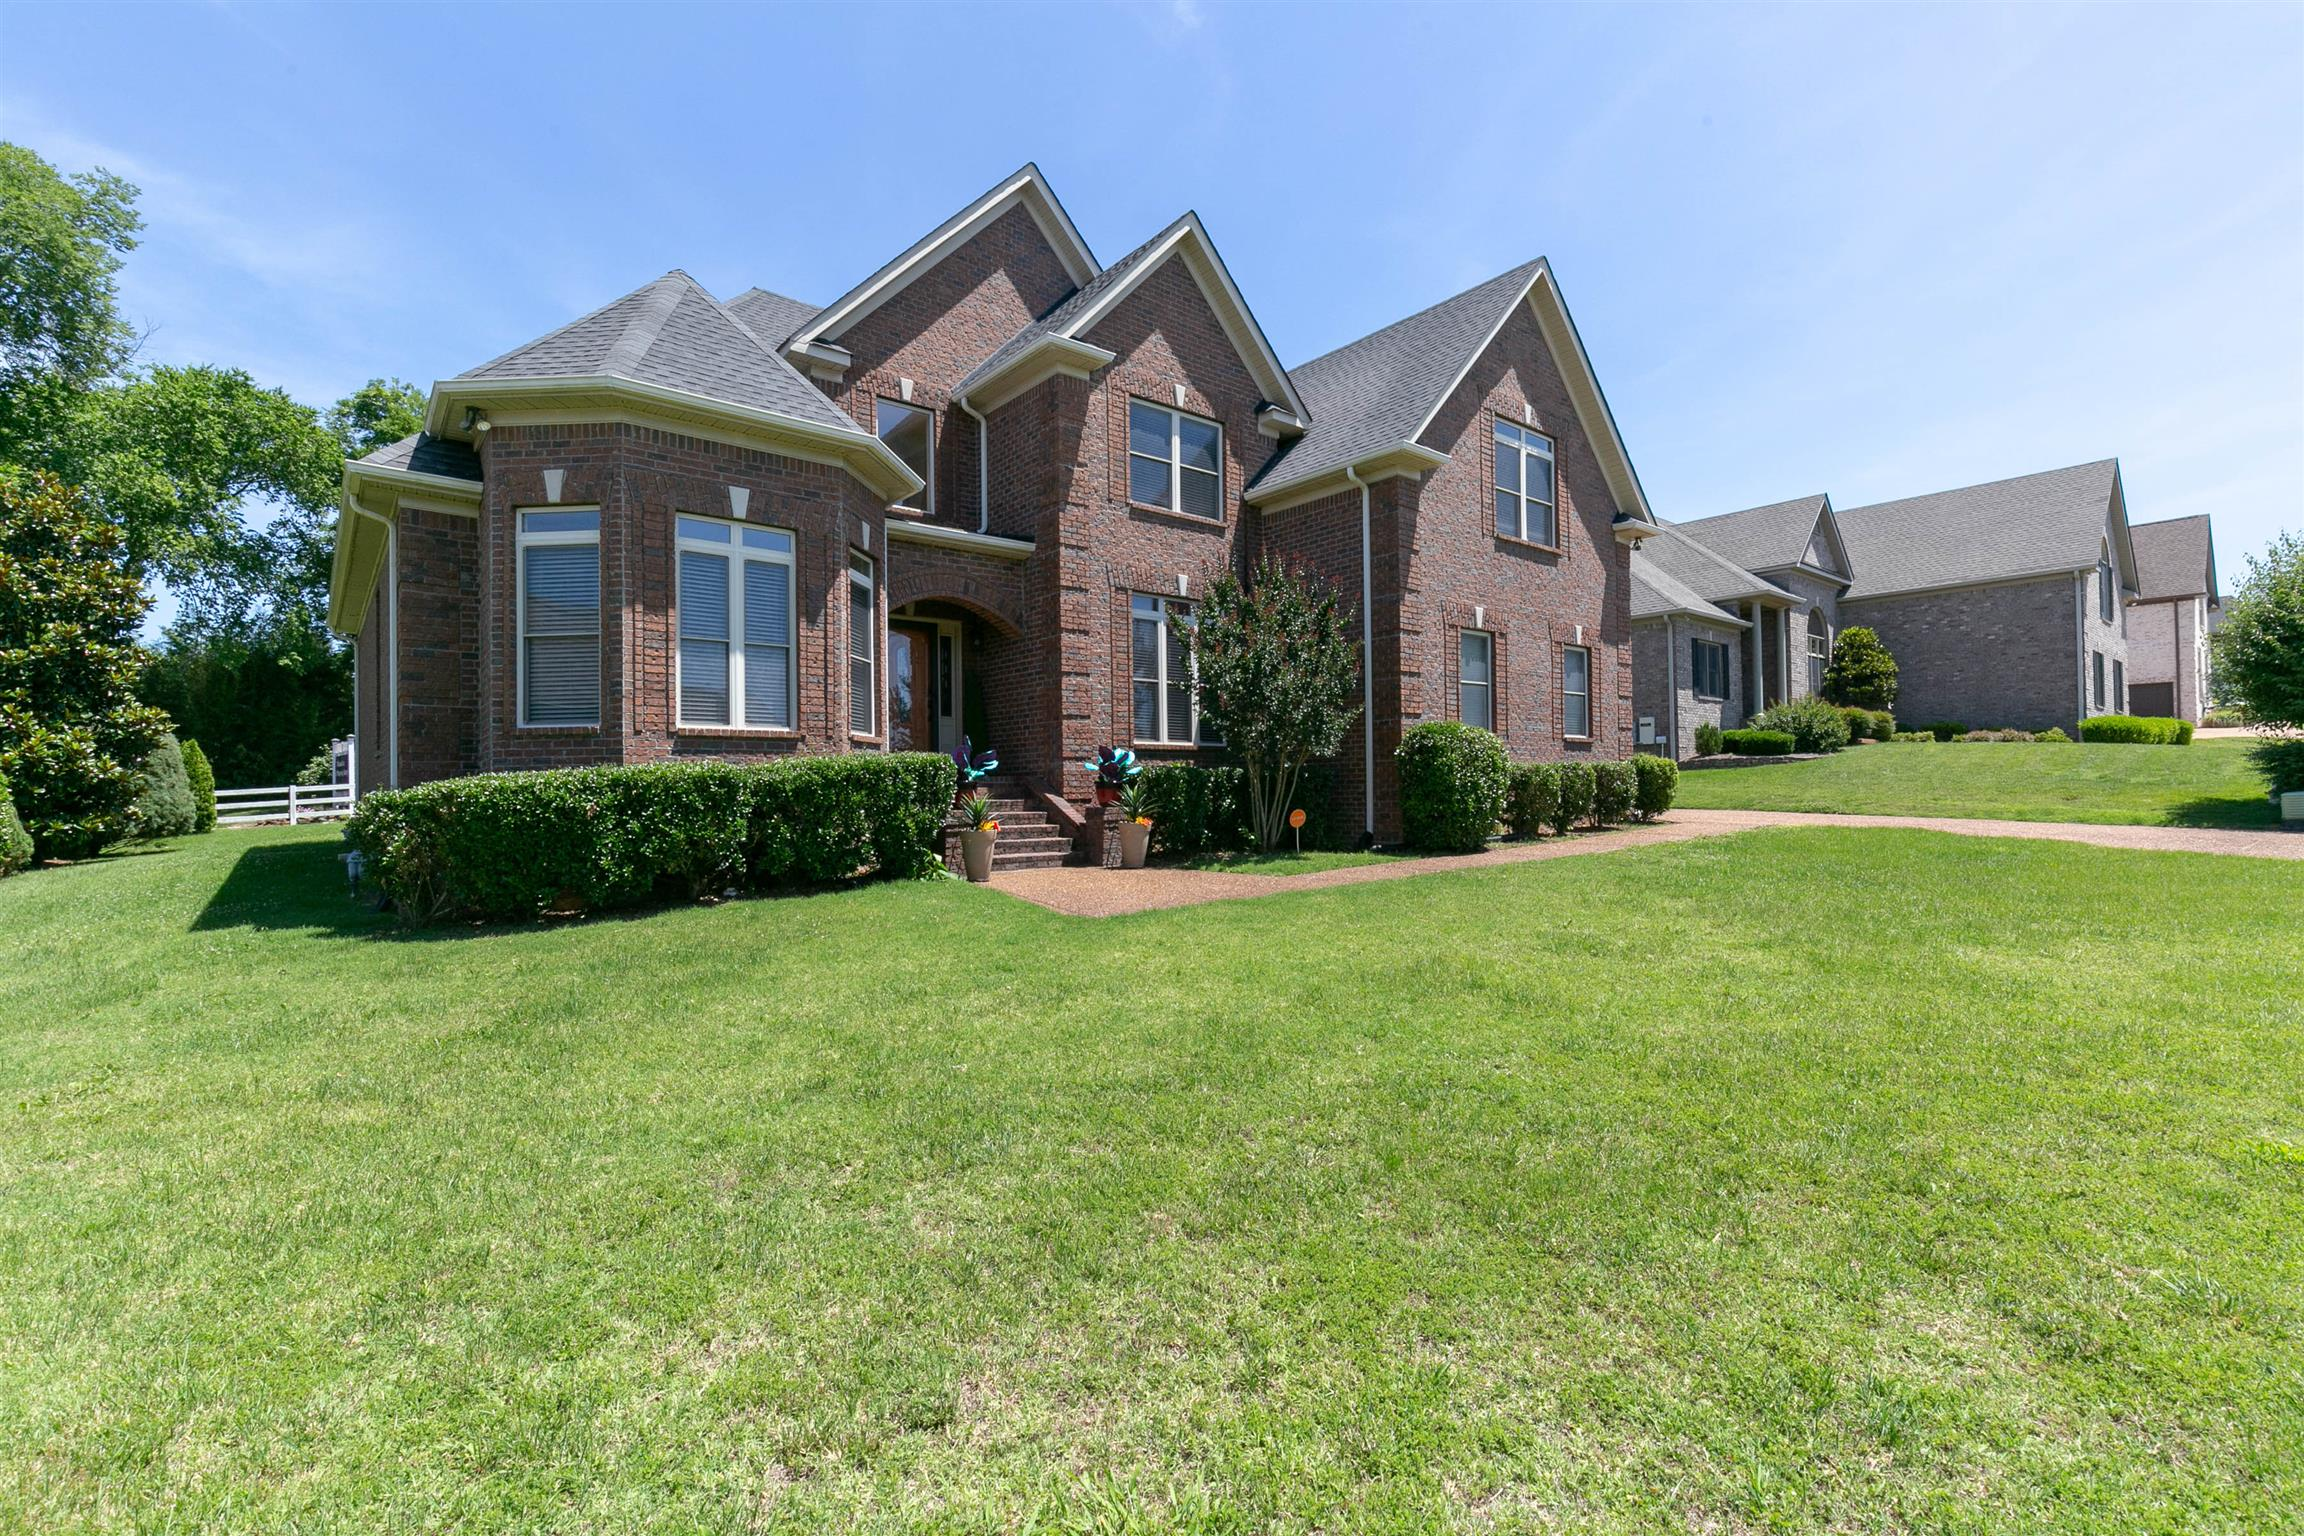 1548 Stokley Ln, Old Hickory, TN 37138 - Old Hickory, TN real estate listing